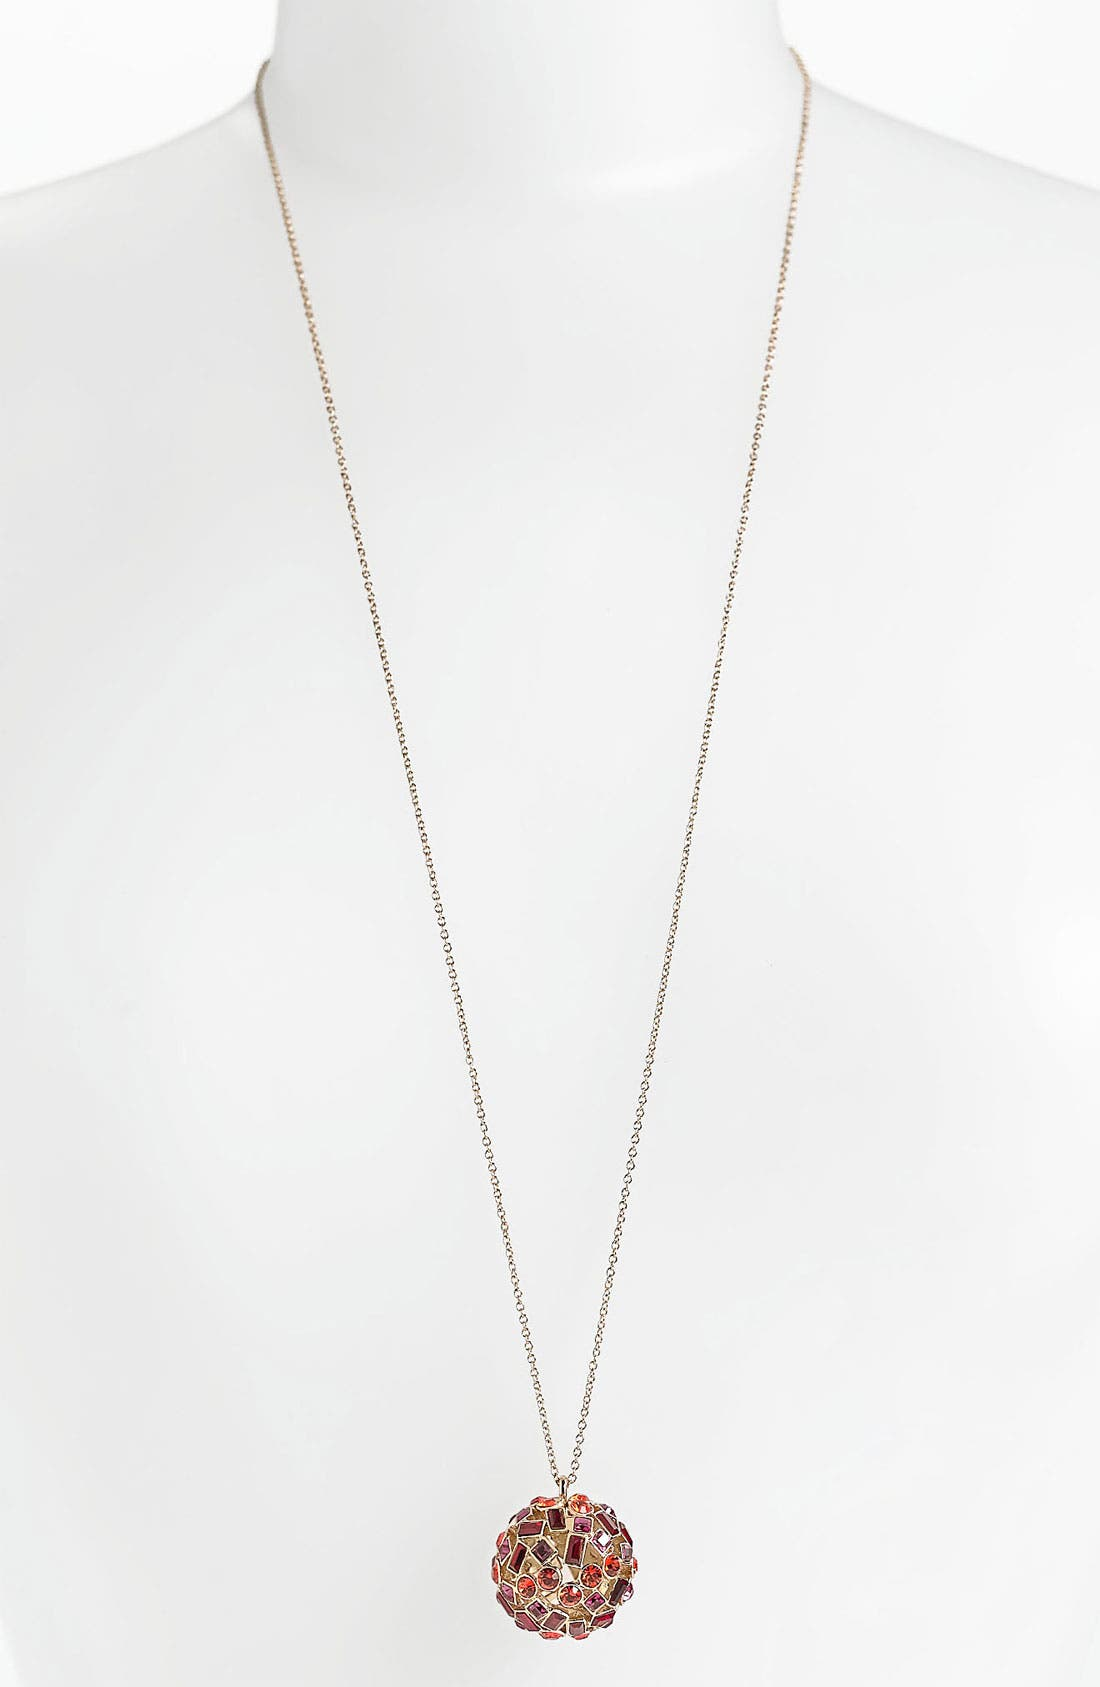 Alternate Image 1 Selected - kate spade new york 'kaleidoball' pendant necklace